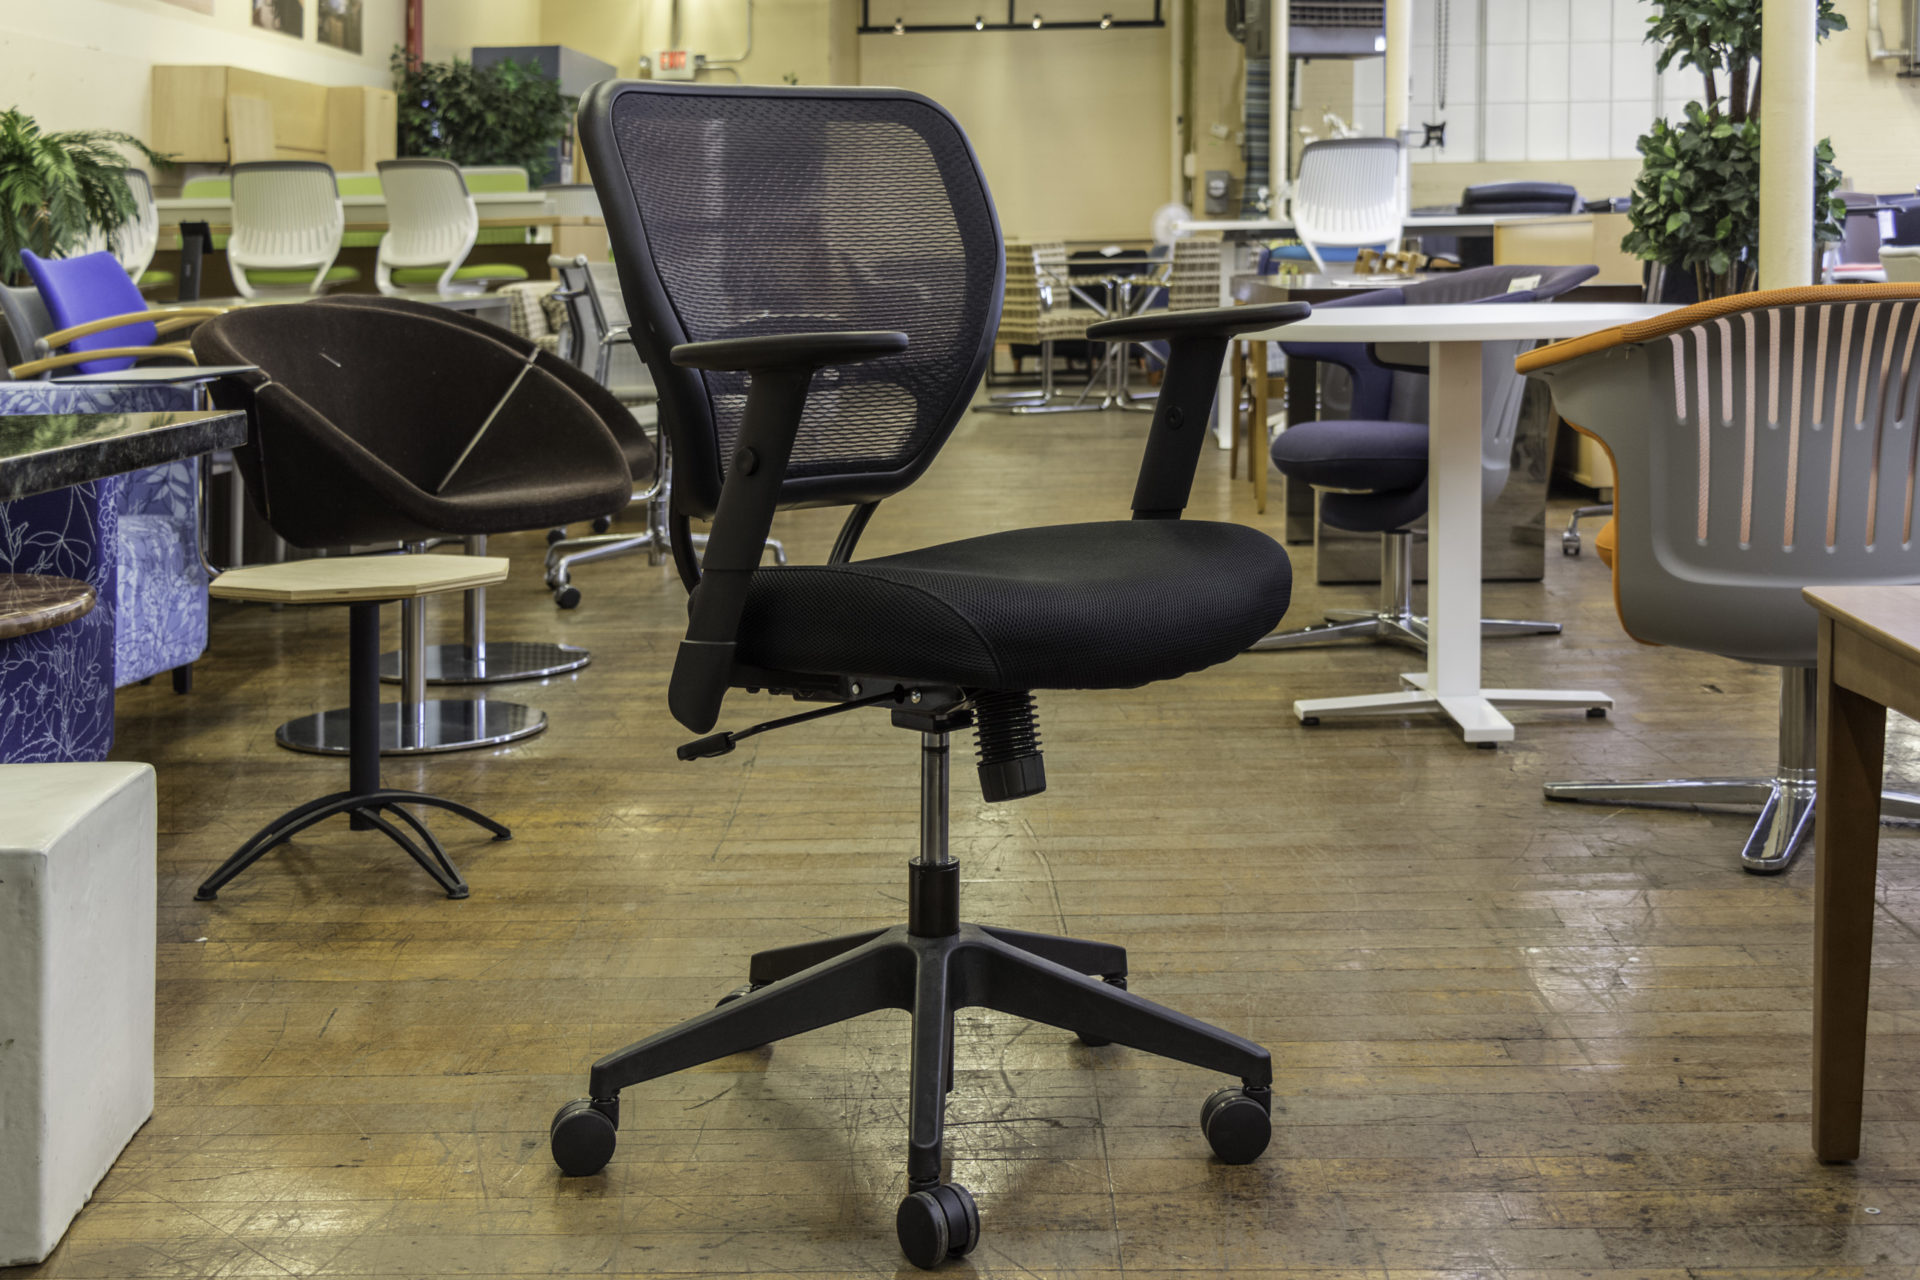 Office Star Space Seating 5500 Mesh Back Managers Chairs